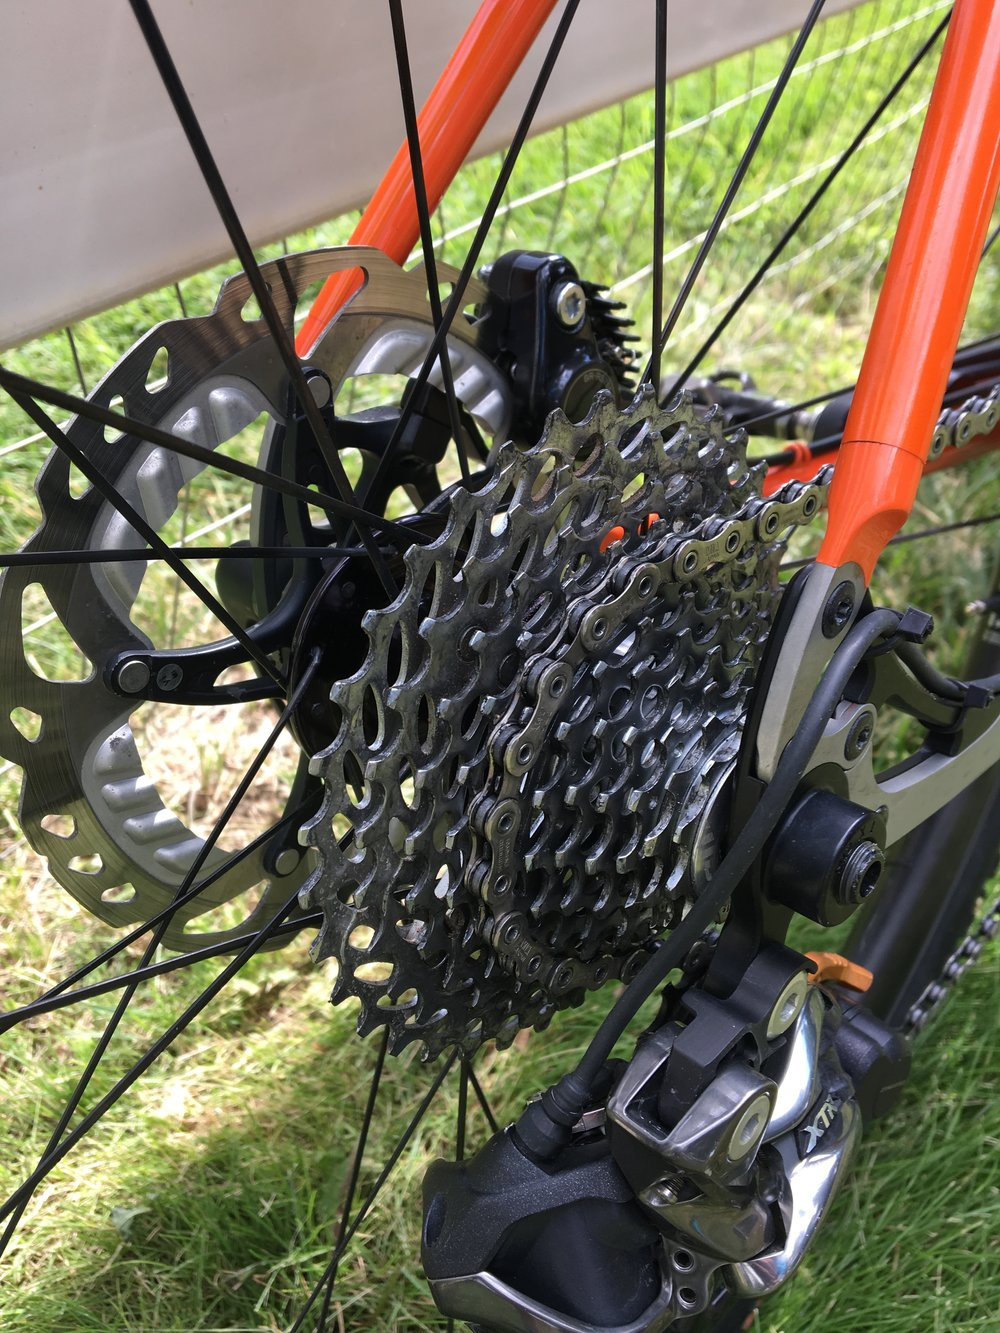 While I left the 42/30 chainrings alone, I installed a SRAM 11-36 cassette instead of the Shimano 11-40 I used for Tour Divide. The 11-36 gives smaller jumps, nice for flatter roads.